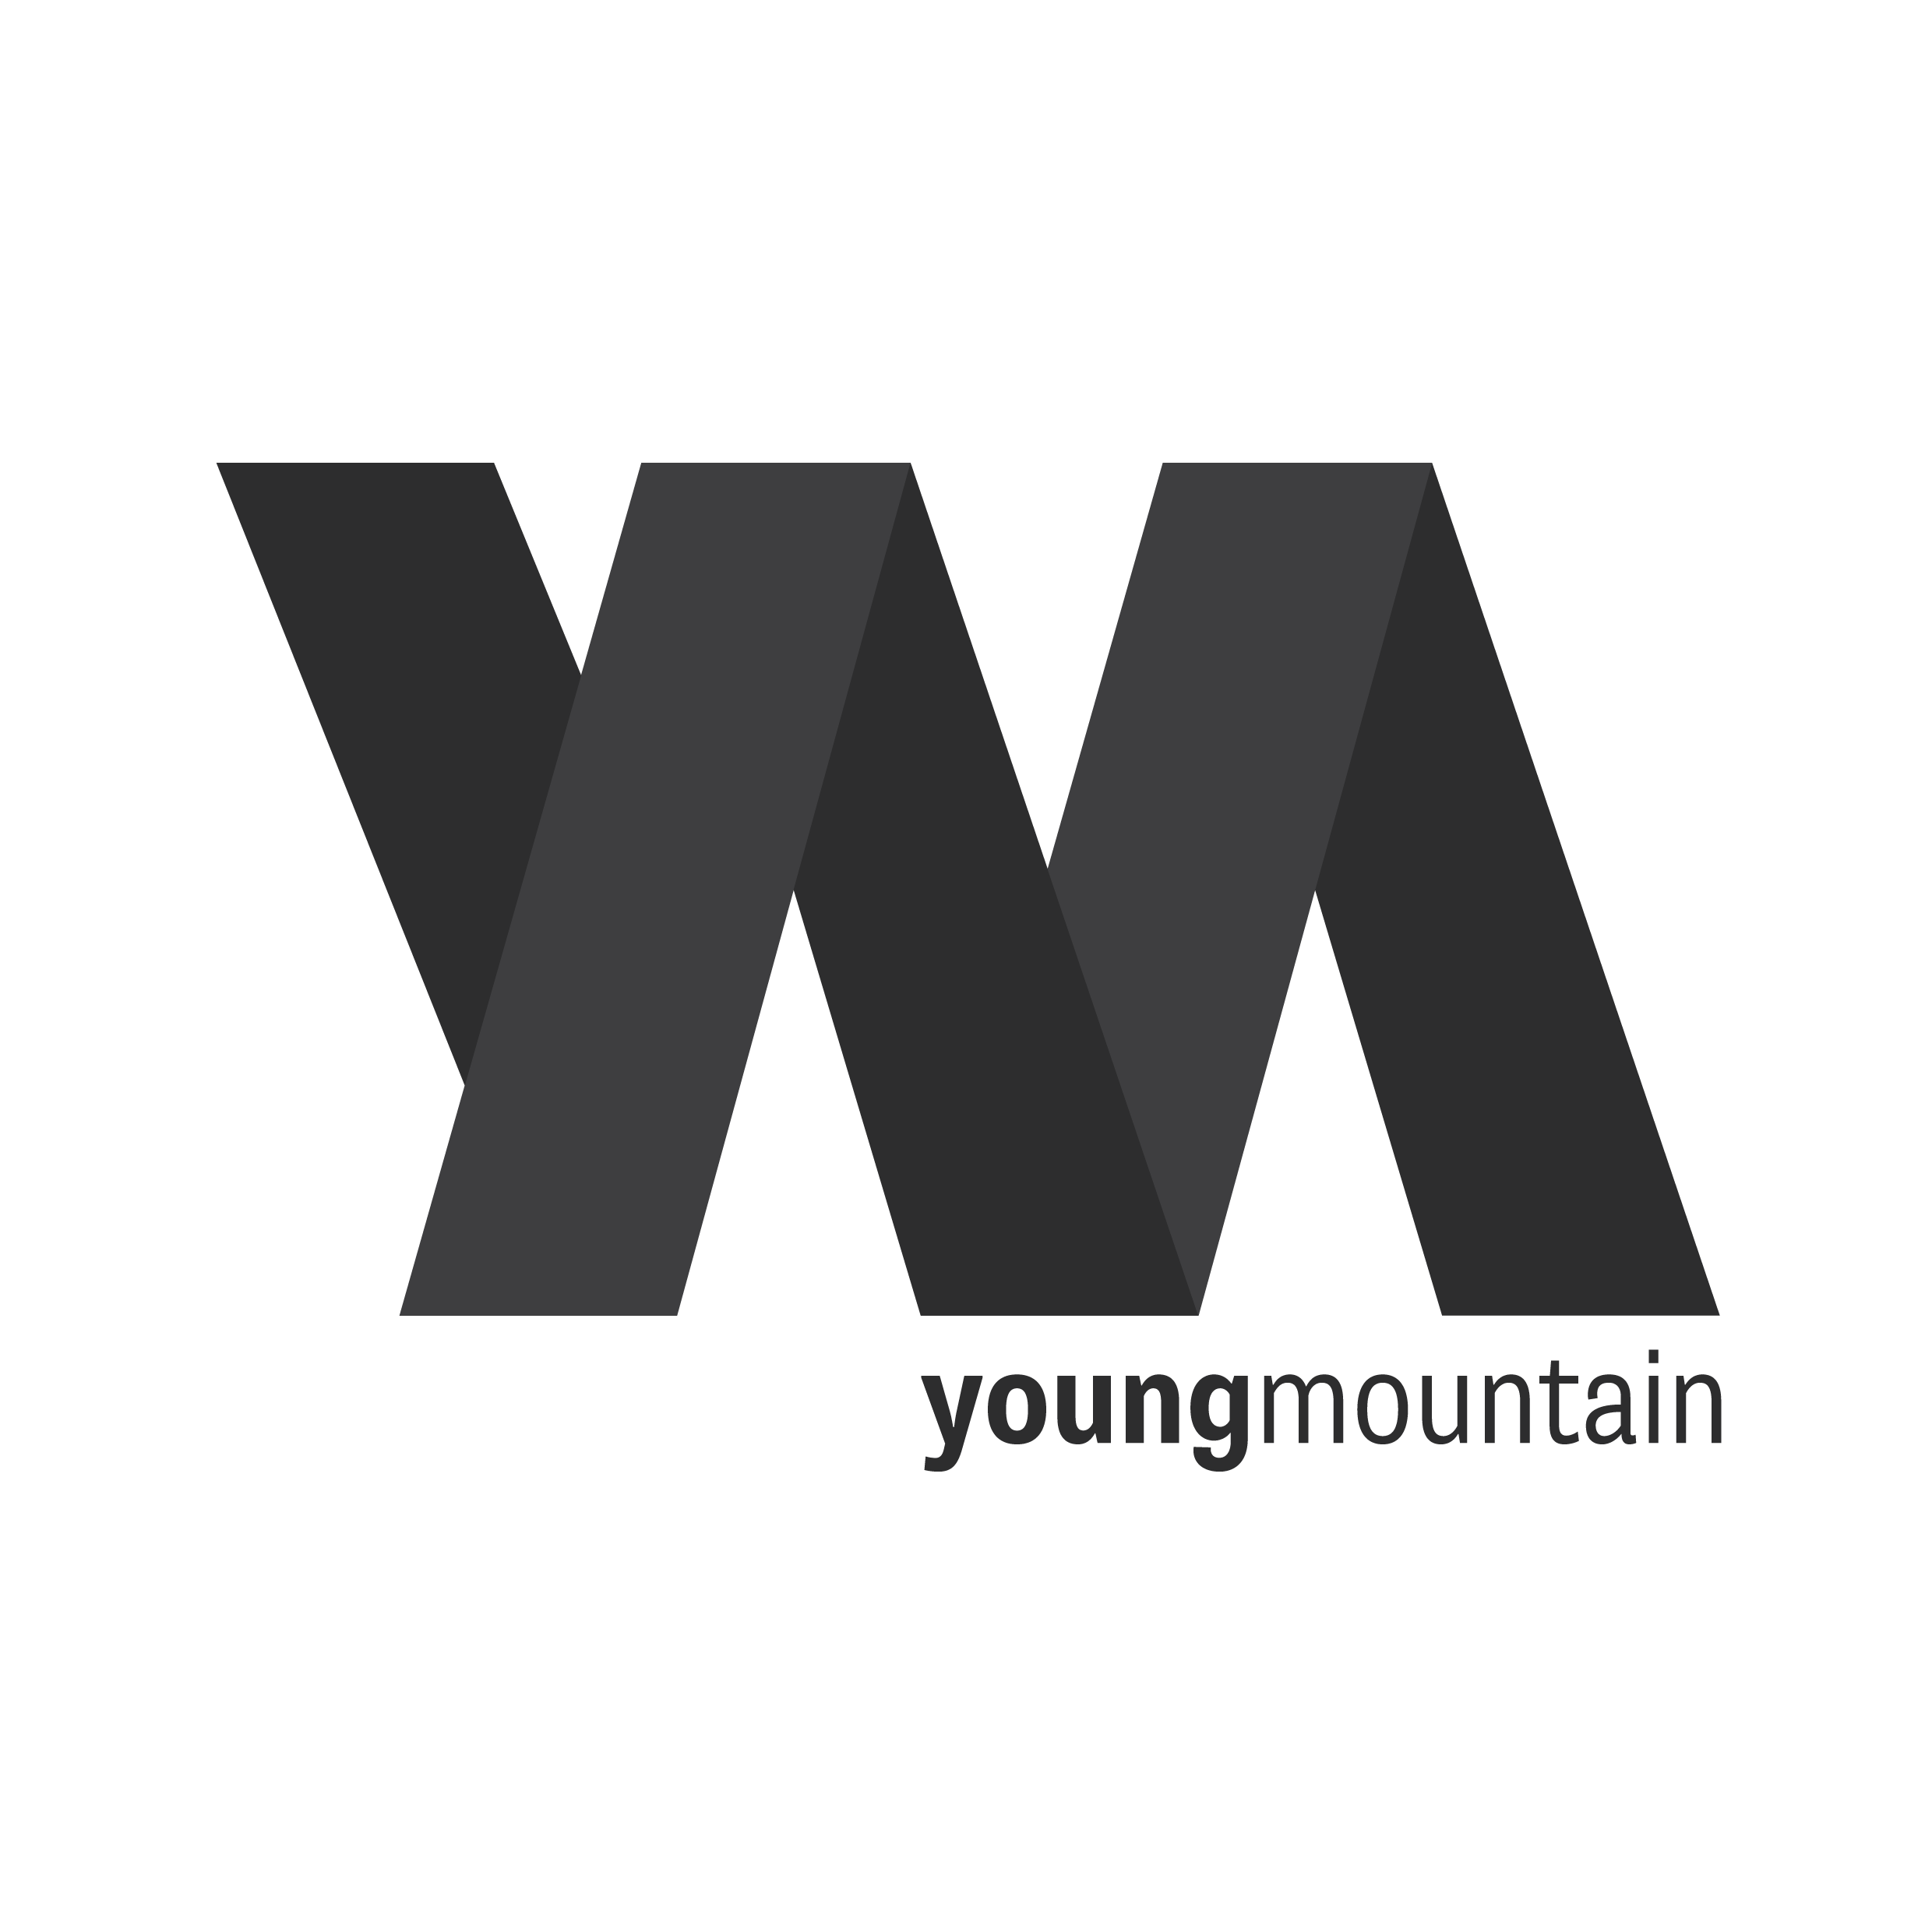 Young Mountain Marketing